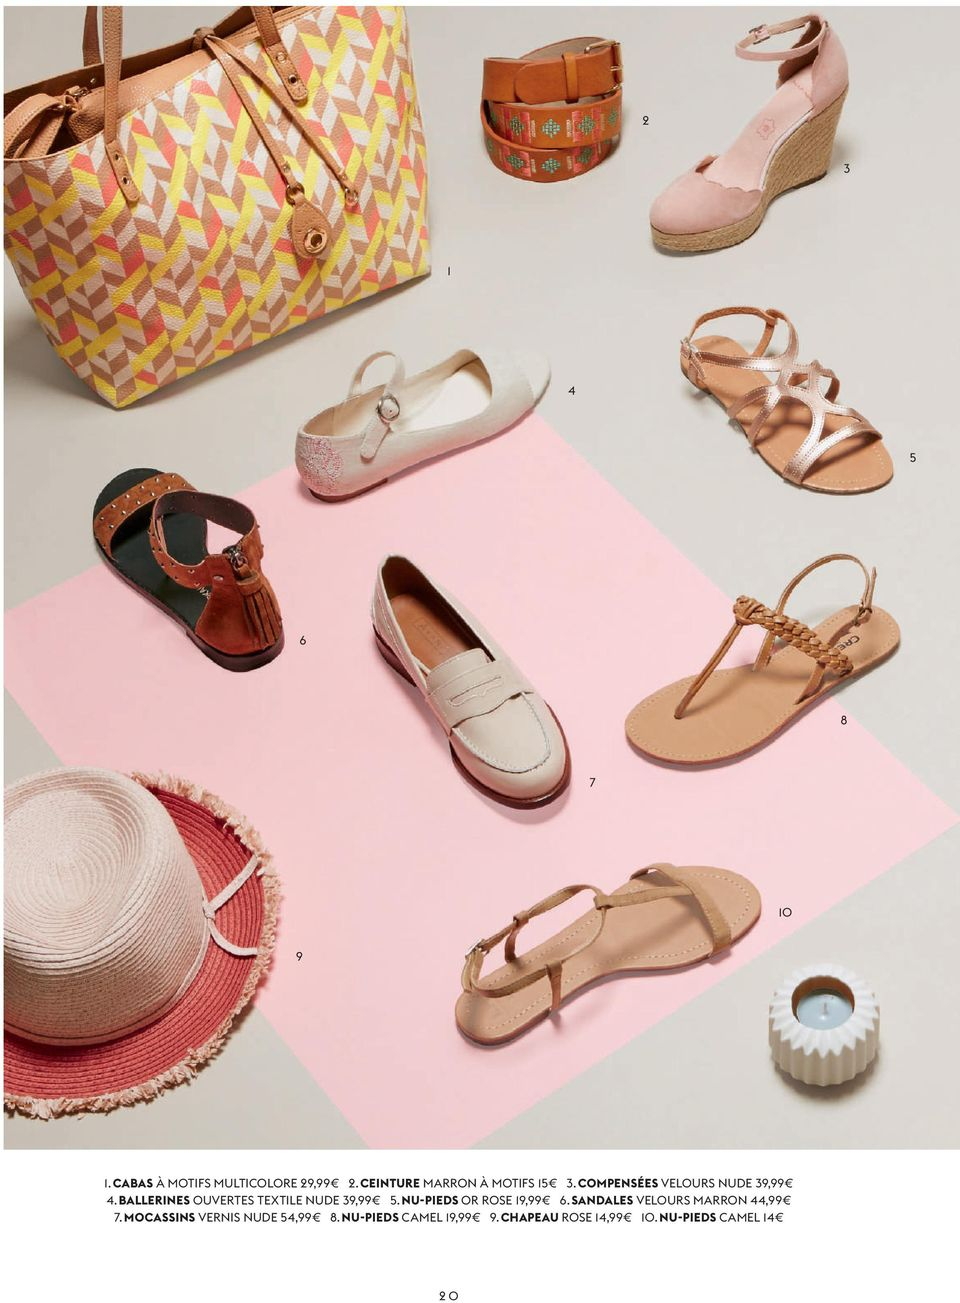 BALLERINES OUVERTES TEXTILE NUDE 9,99. NU-PIEDS OR ROSE 19,99.